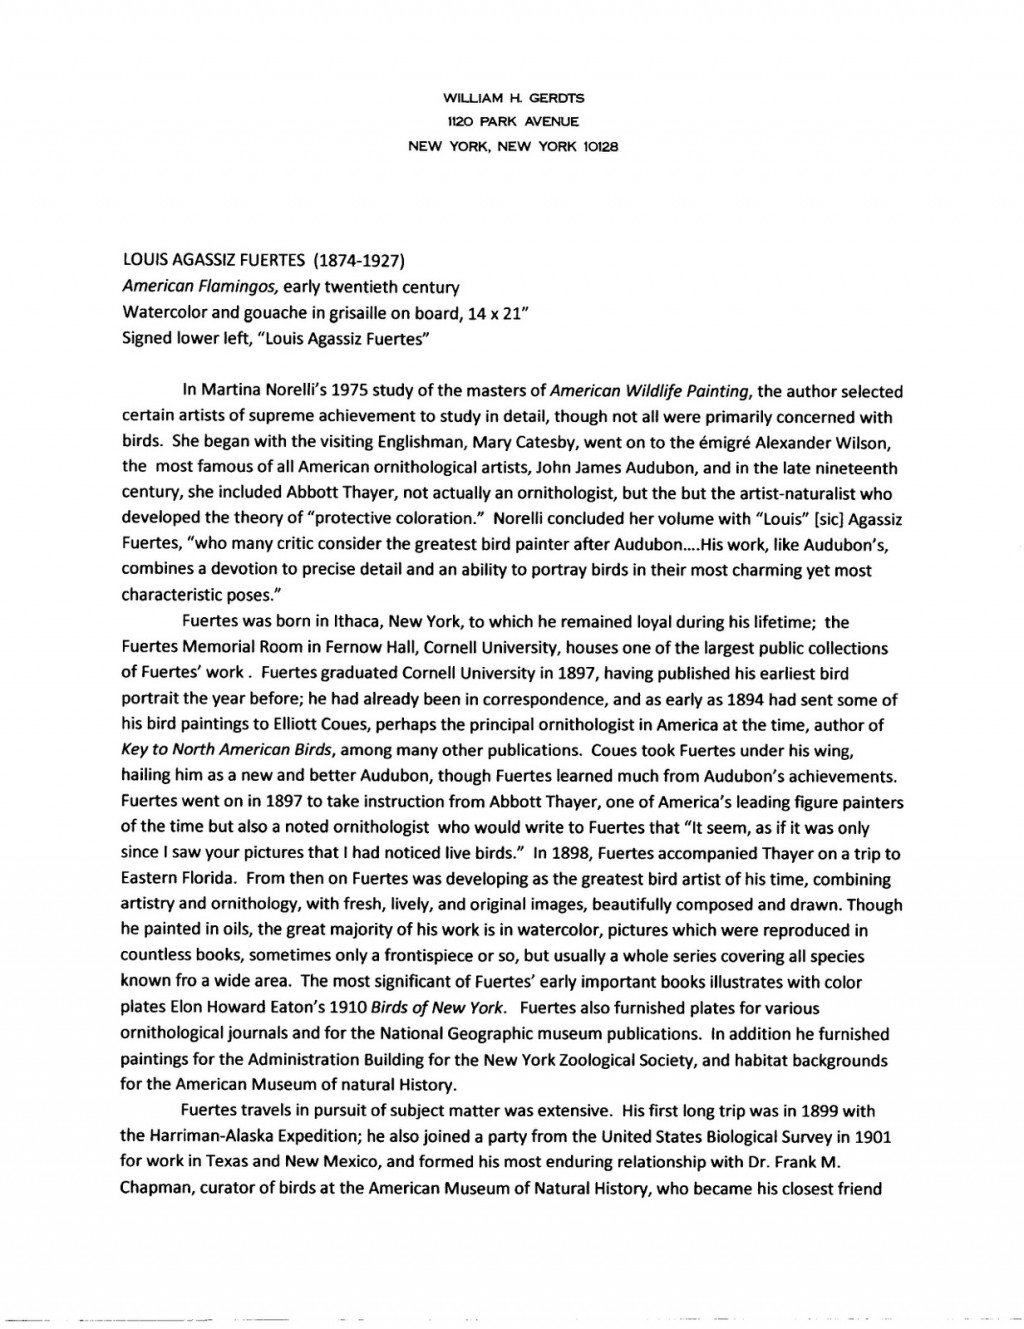 024 Personal Essay Outline Example Formidable Narrative Examples Template Large